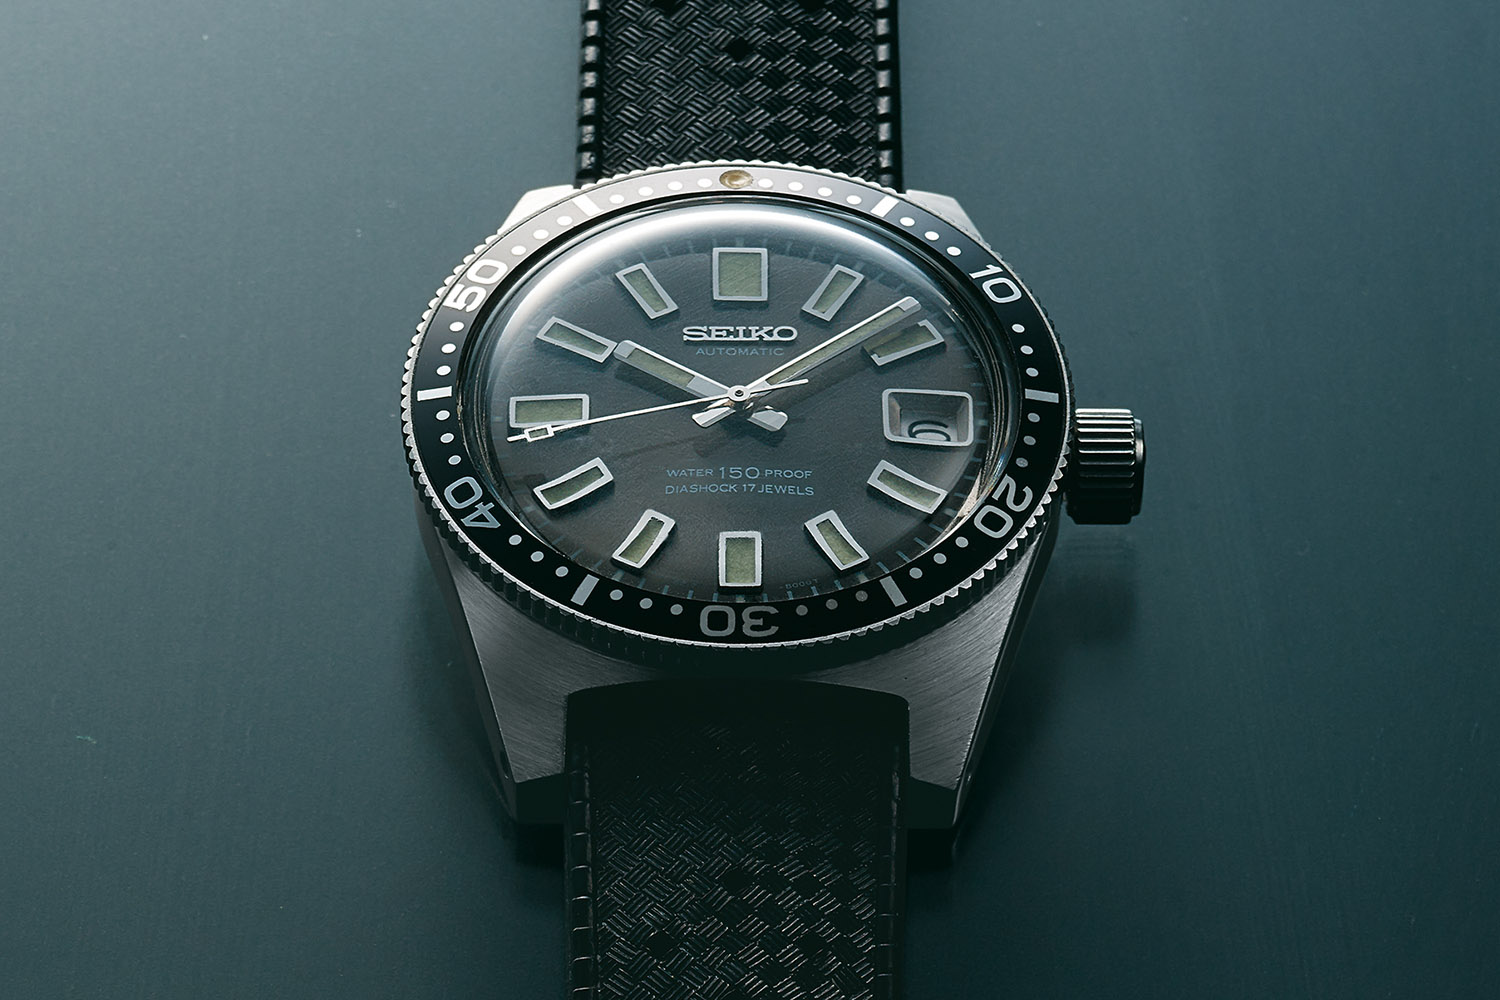 Seiko-62Mas-1965-Seiko-First-Dive-Watch.